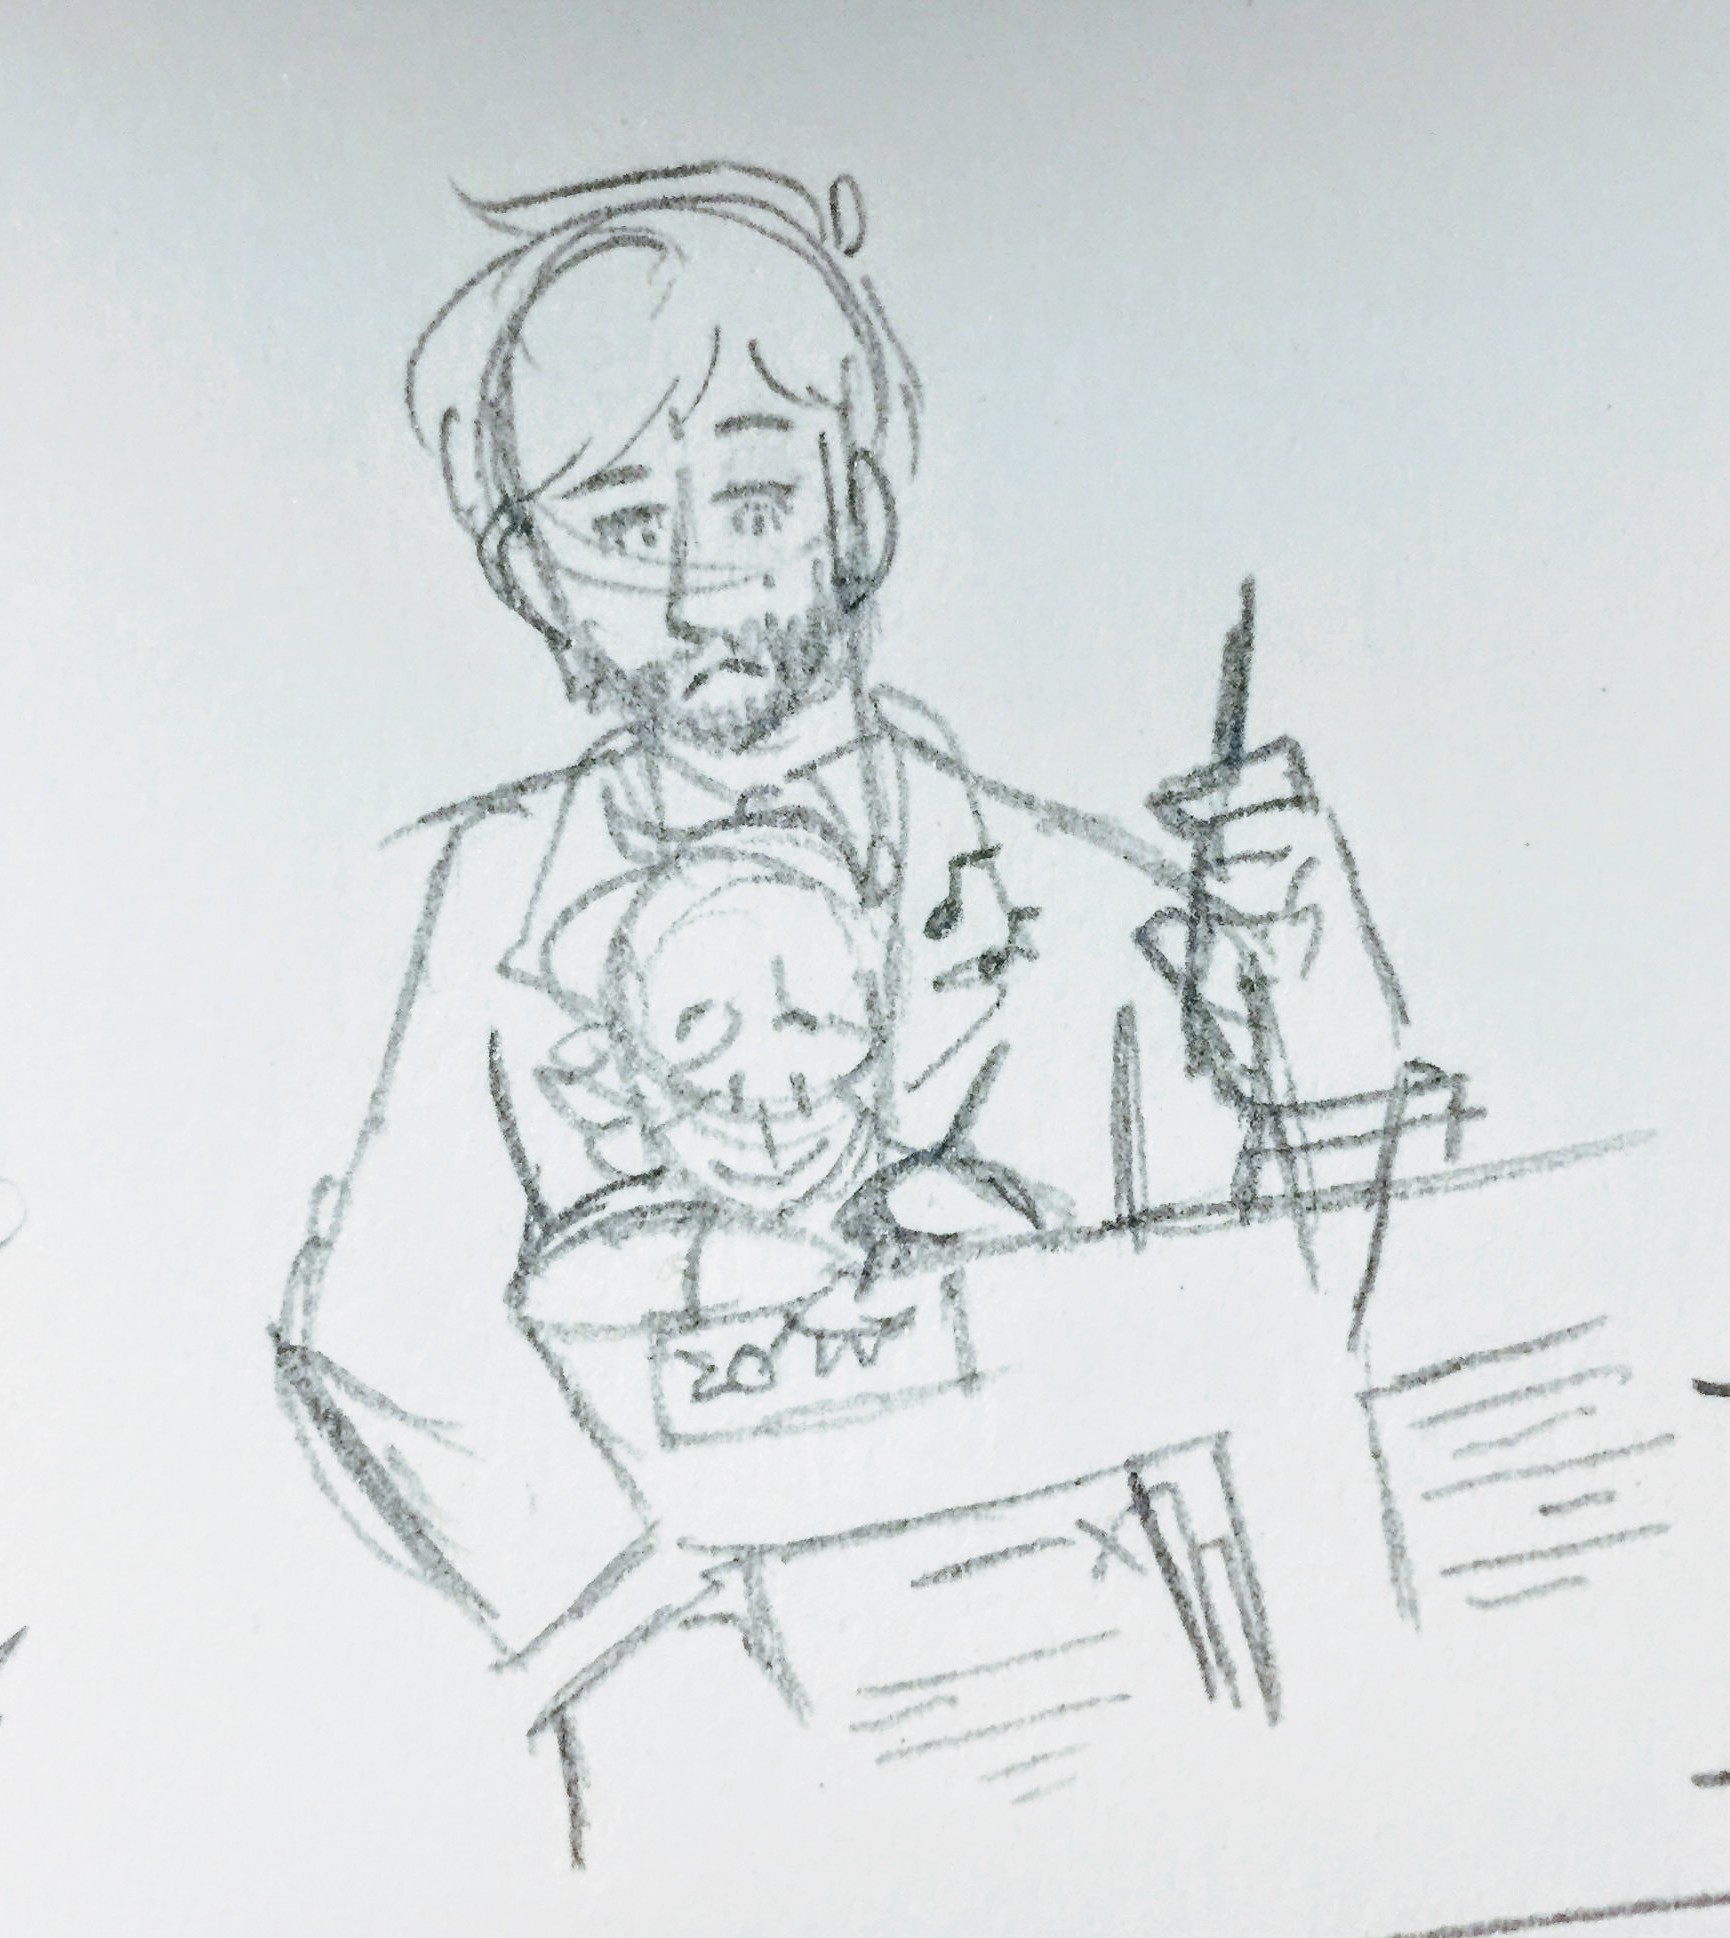 Alan sits in Howard's lap and happily draws as Howard works